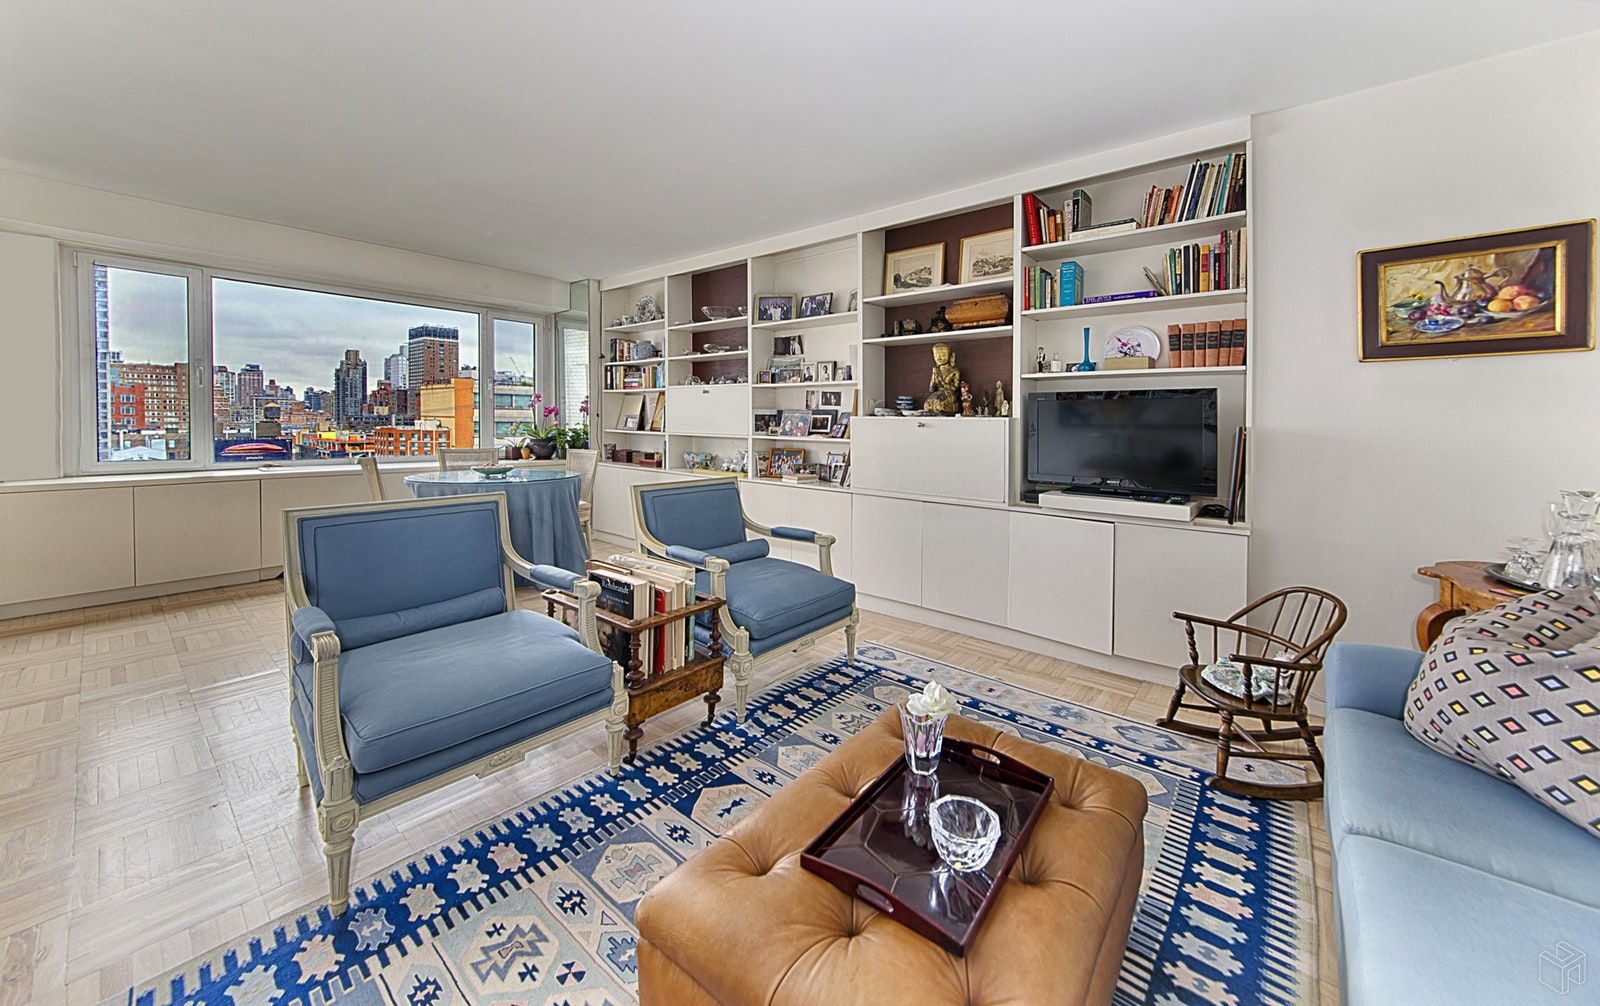 303 East 57th Street 11k, Midtown East, NYC, 10022, $360,000, Property For Sale, Halstead Real Estate, Photo 1